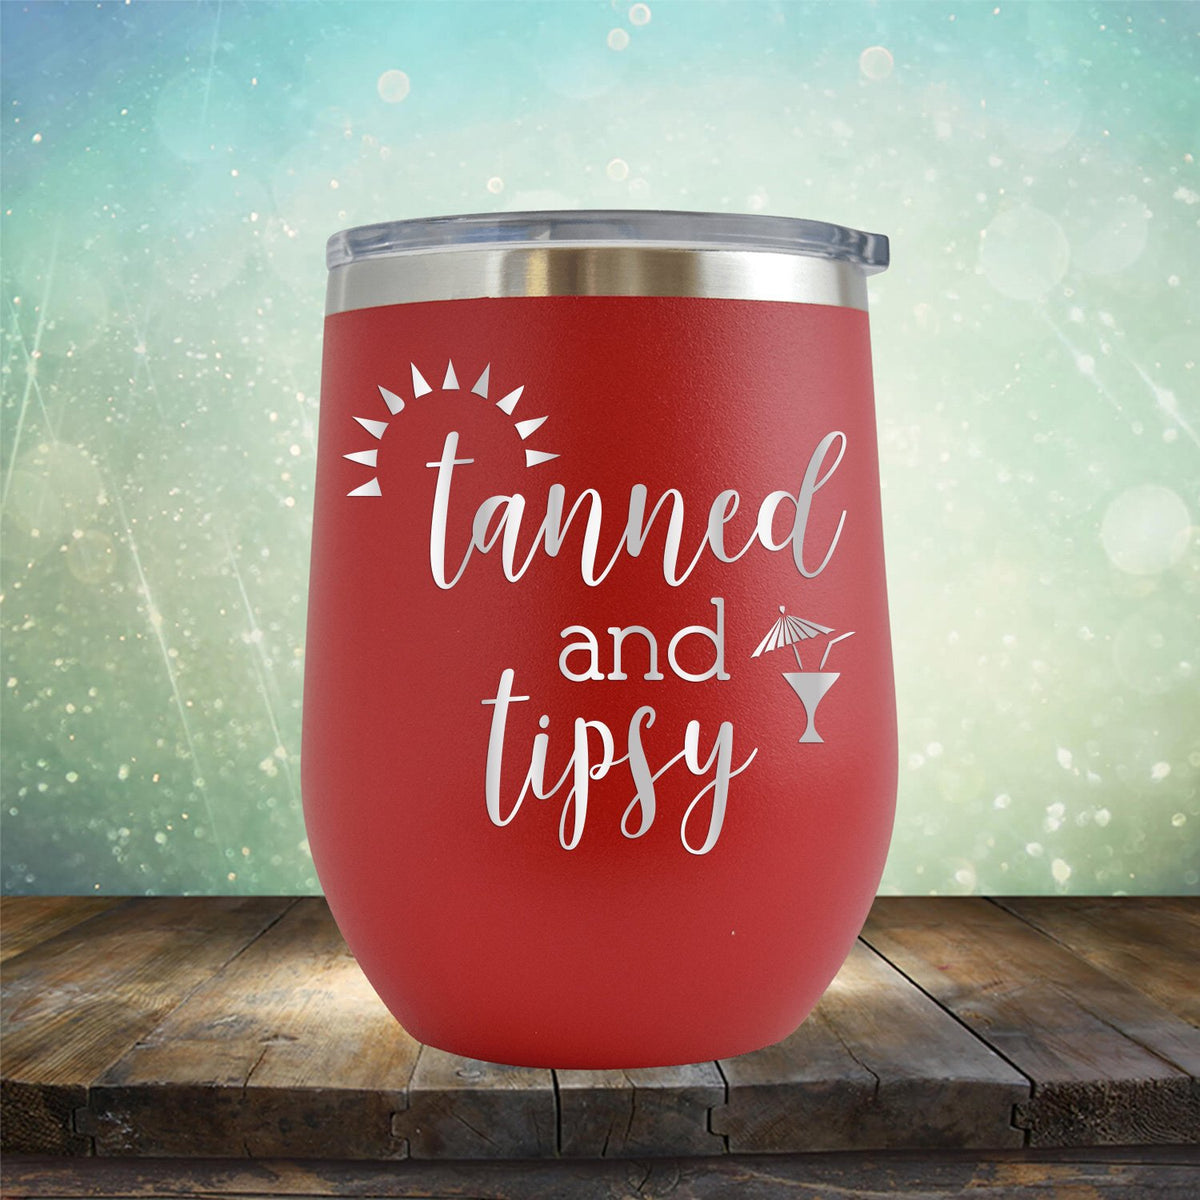 Tanned and Tipsy - Stemless Wine Cup